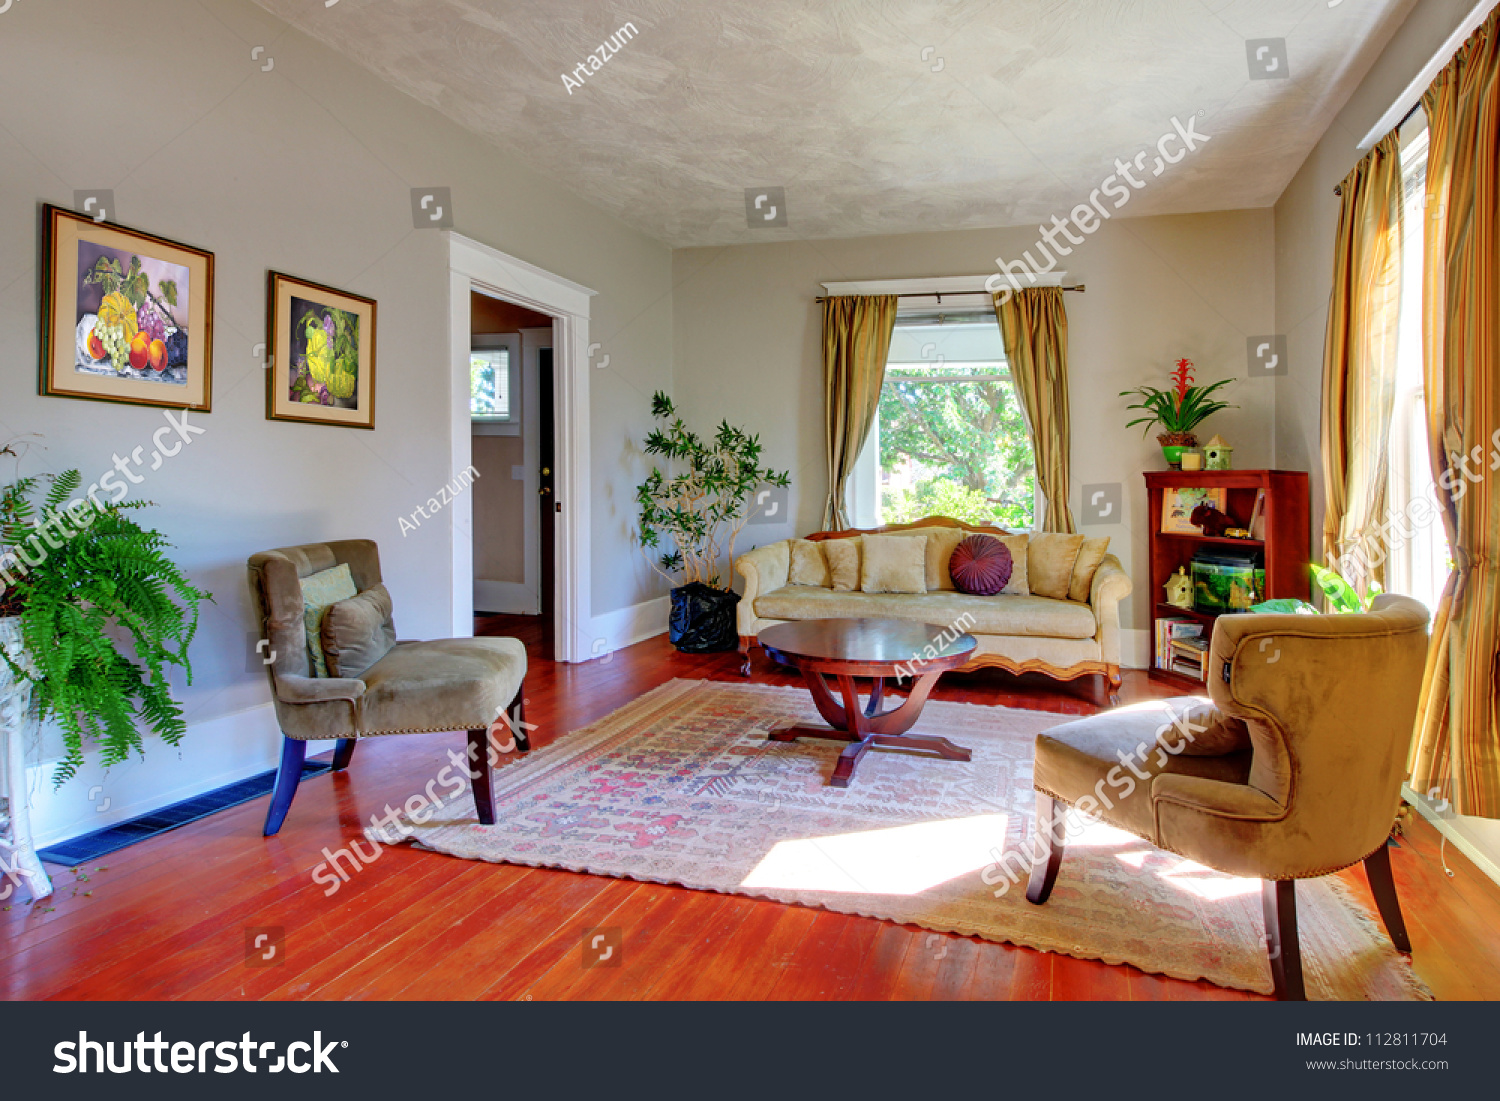 Living Room With Yellow Curtains, Grey Walls And Antique Sofas.